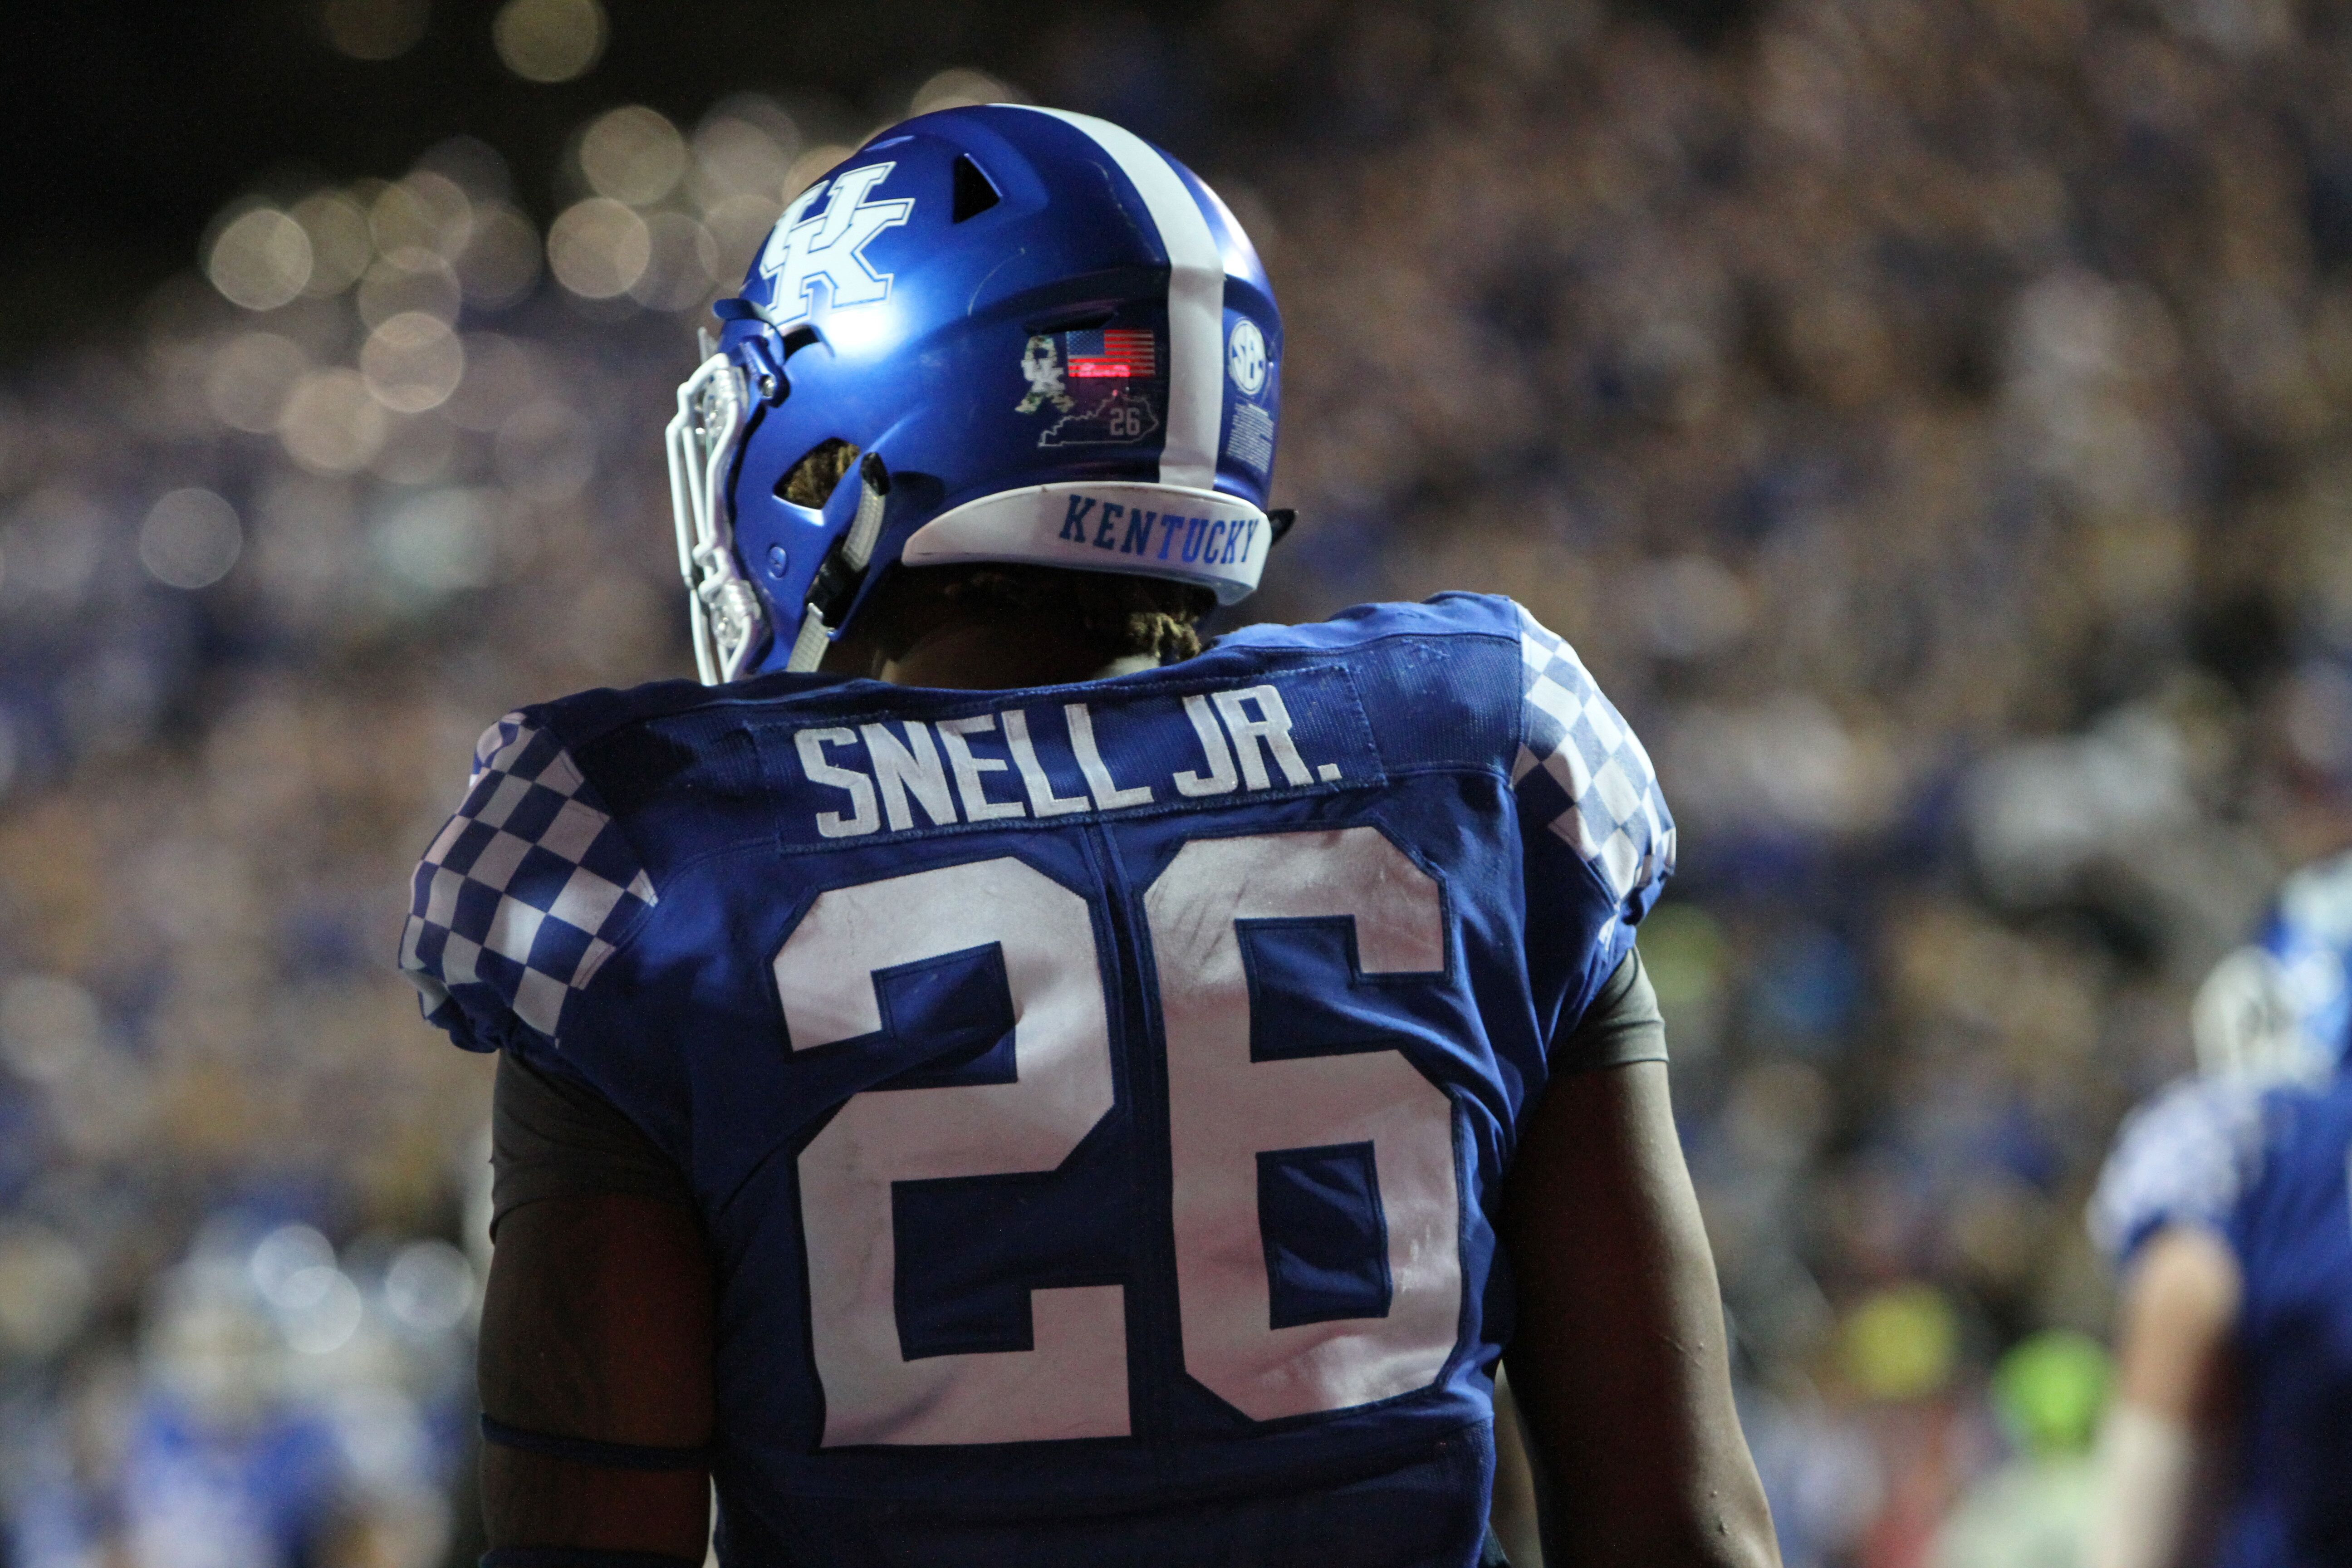 Kentucky's Benny Snell got the worst ejection ever in the ...